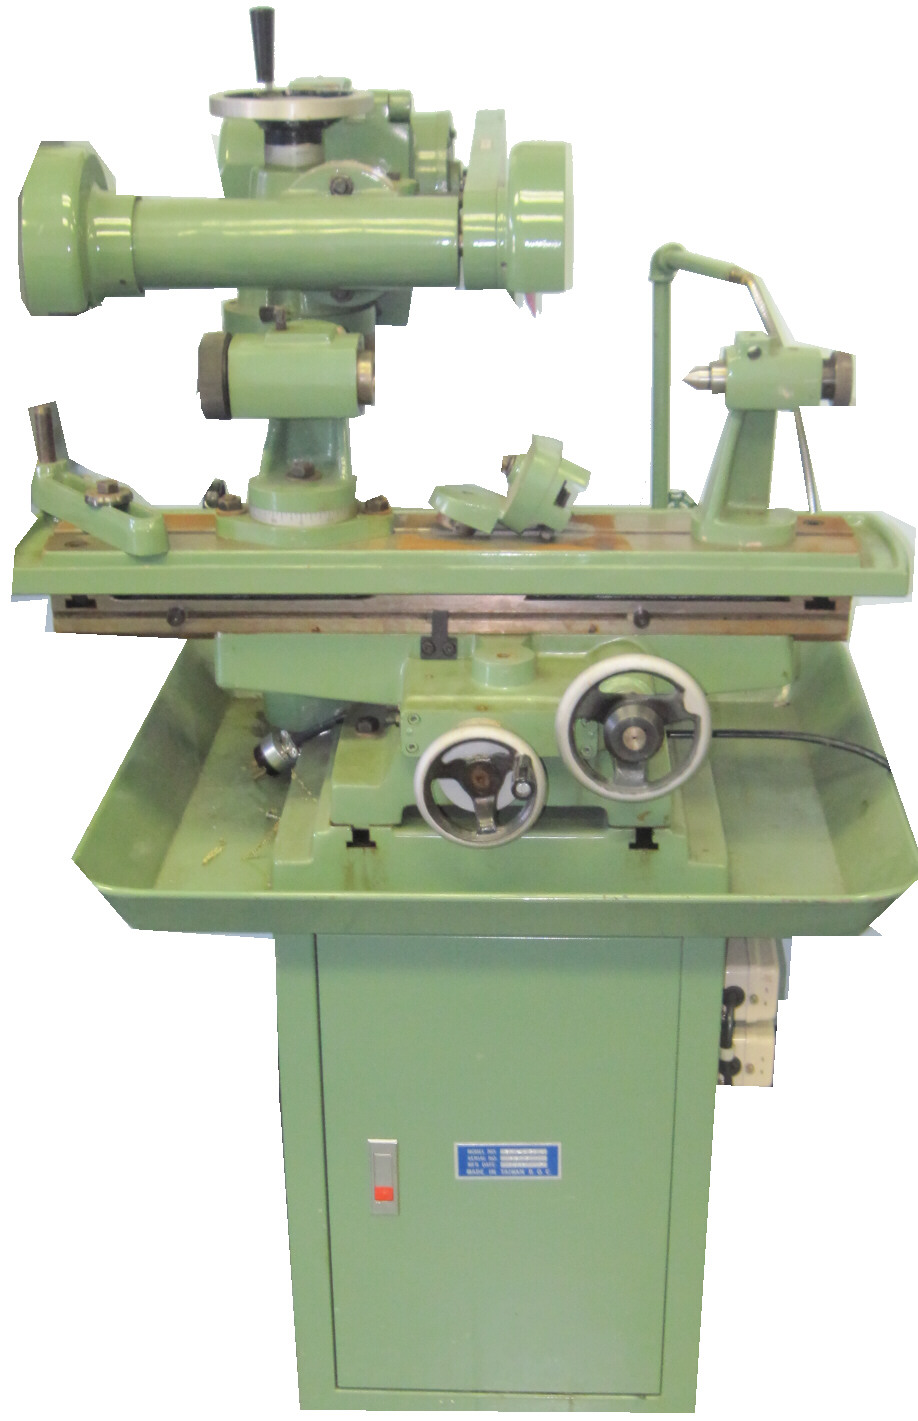 Blue Ridge Machinery And Tools Hurricane Wv Re Myford Reversing Switch Used Enco Universal Tool Cutter Grinder